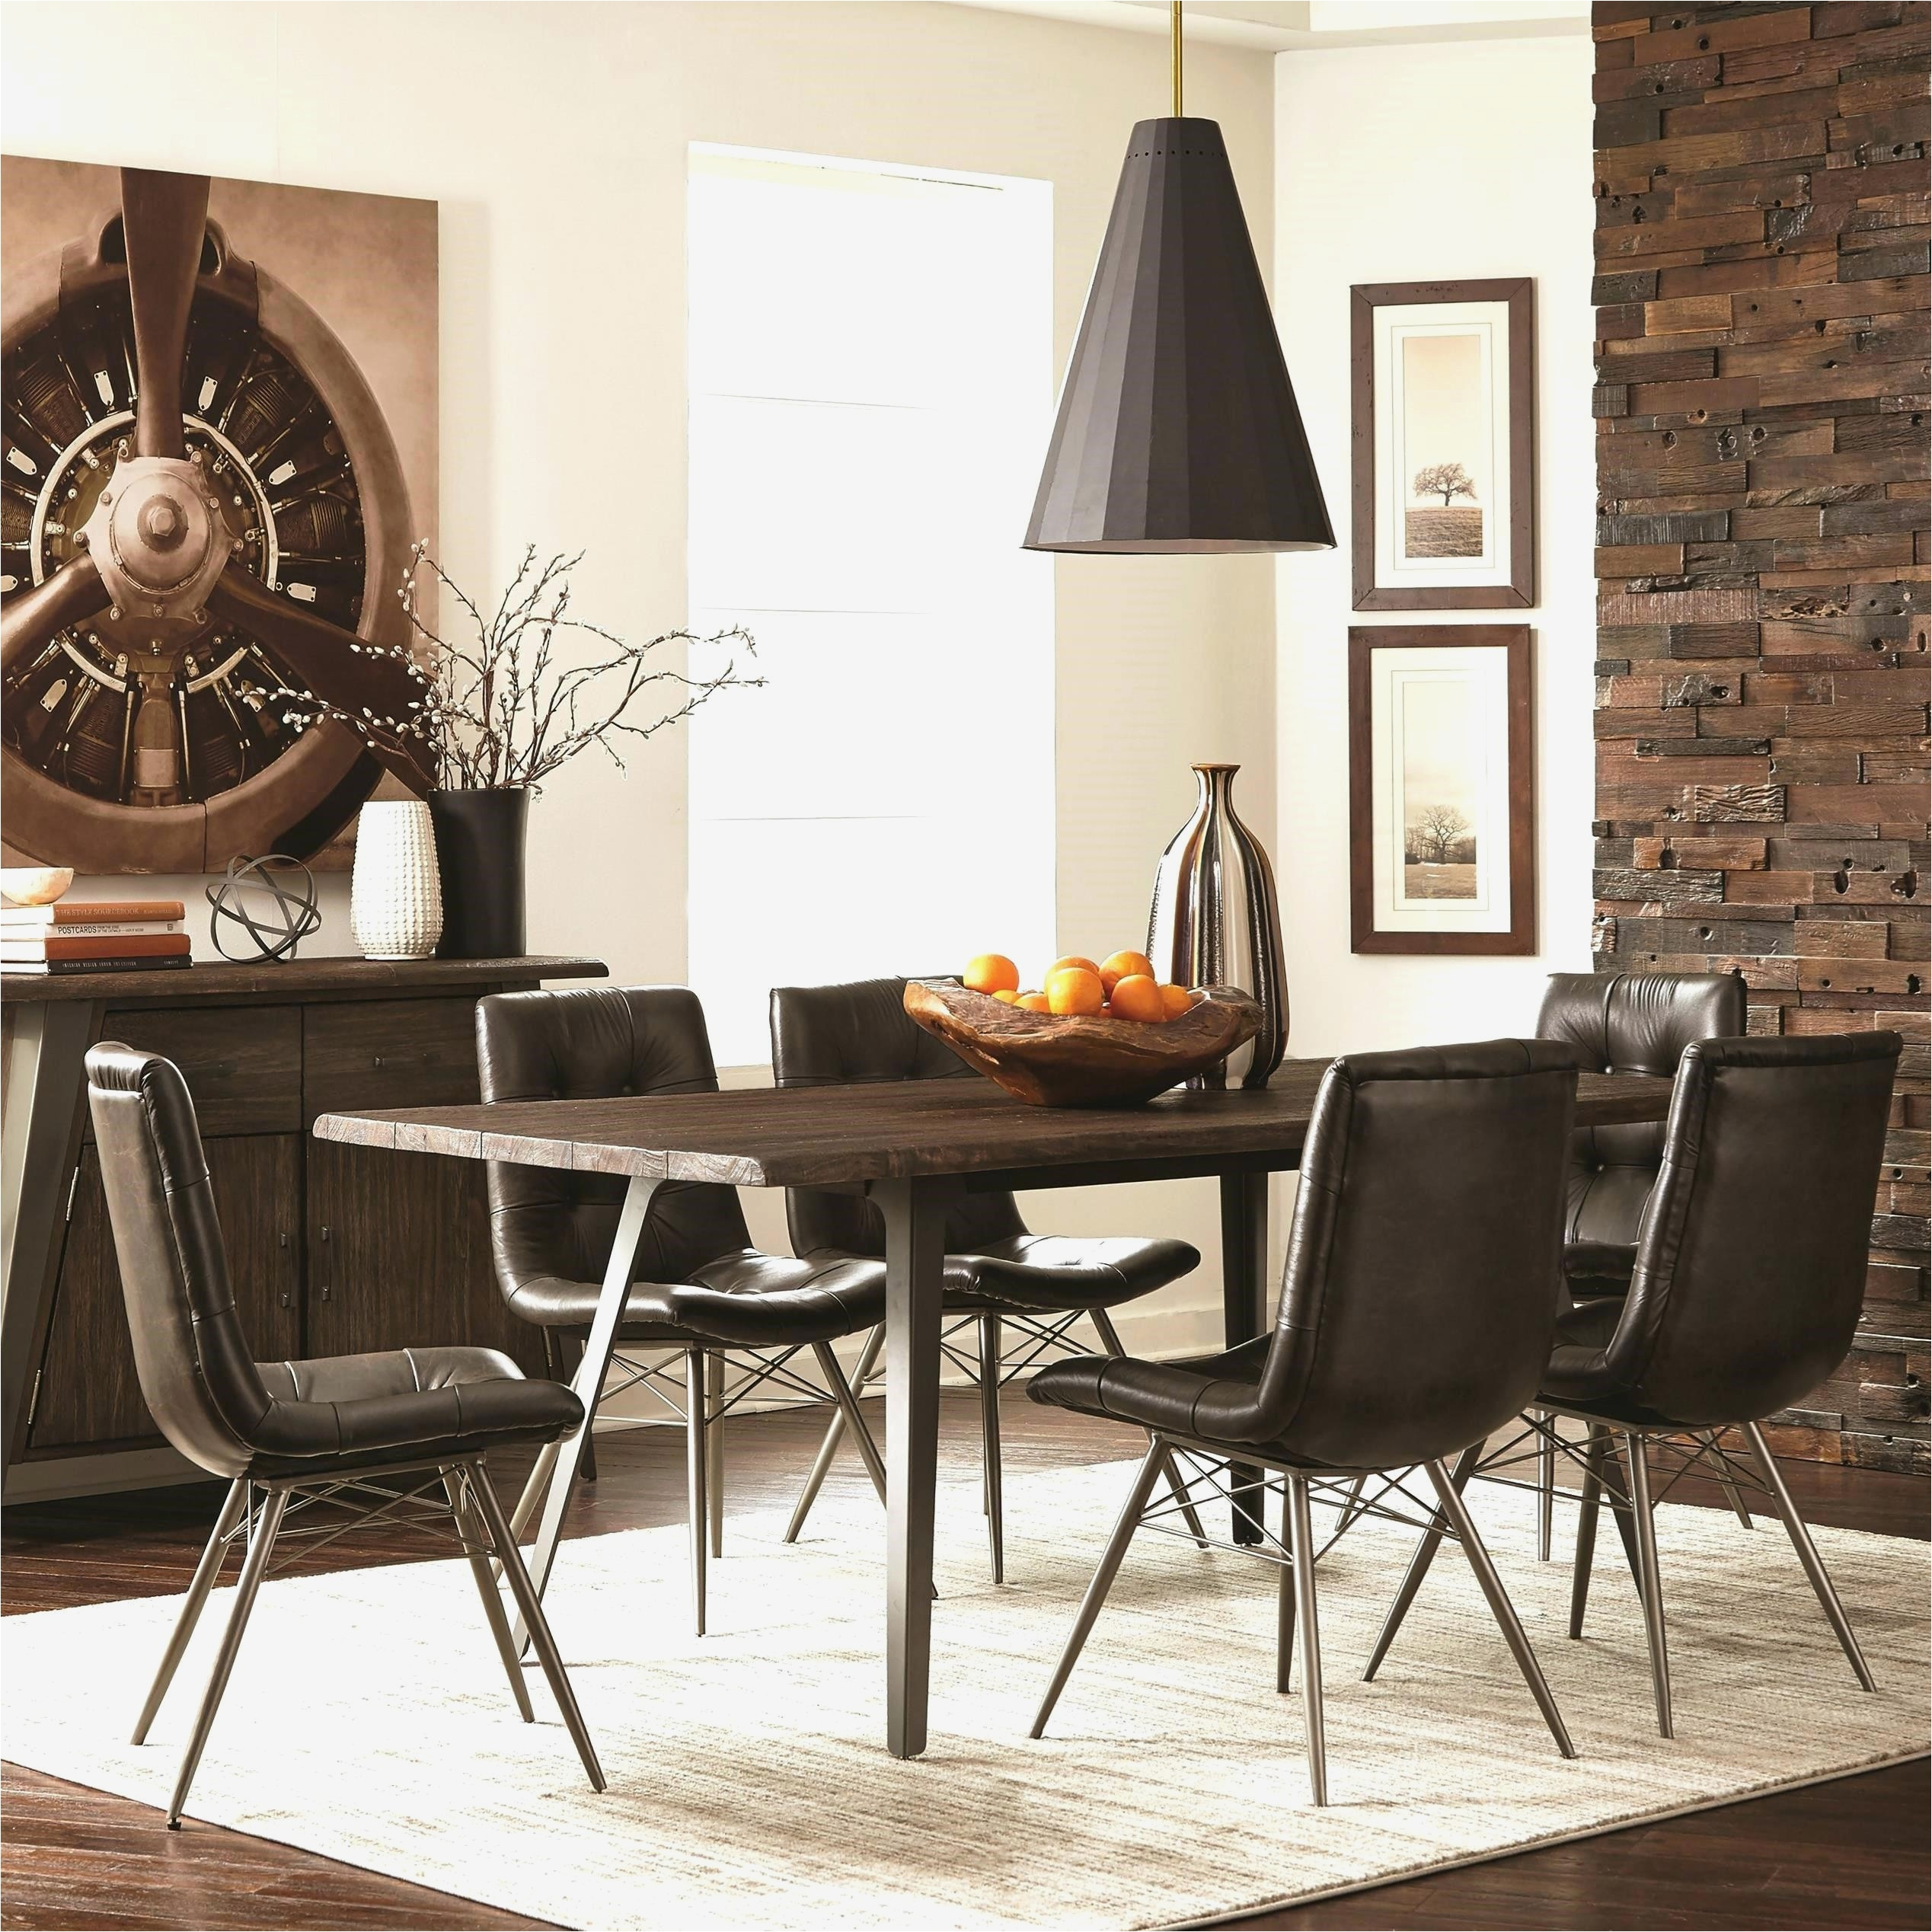 american furniture dining table best of 38 excellent american furniture dining tables stampler collection of american